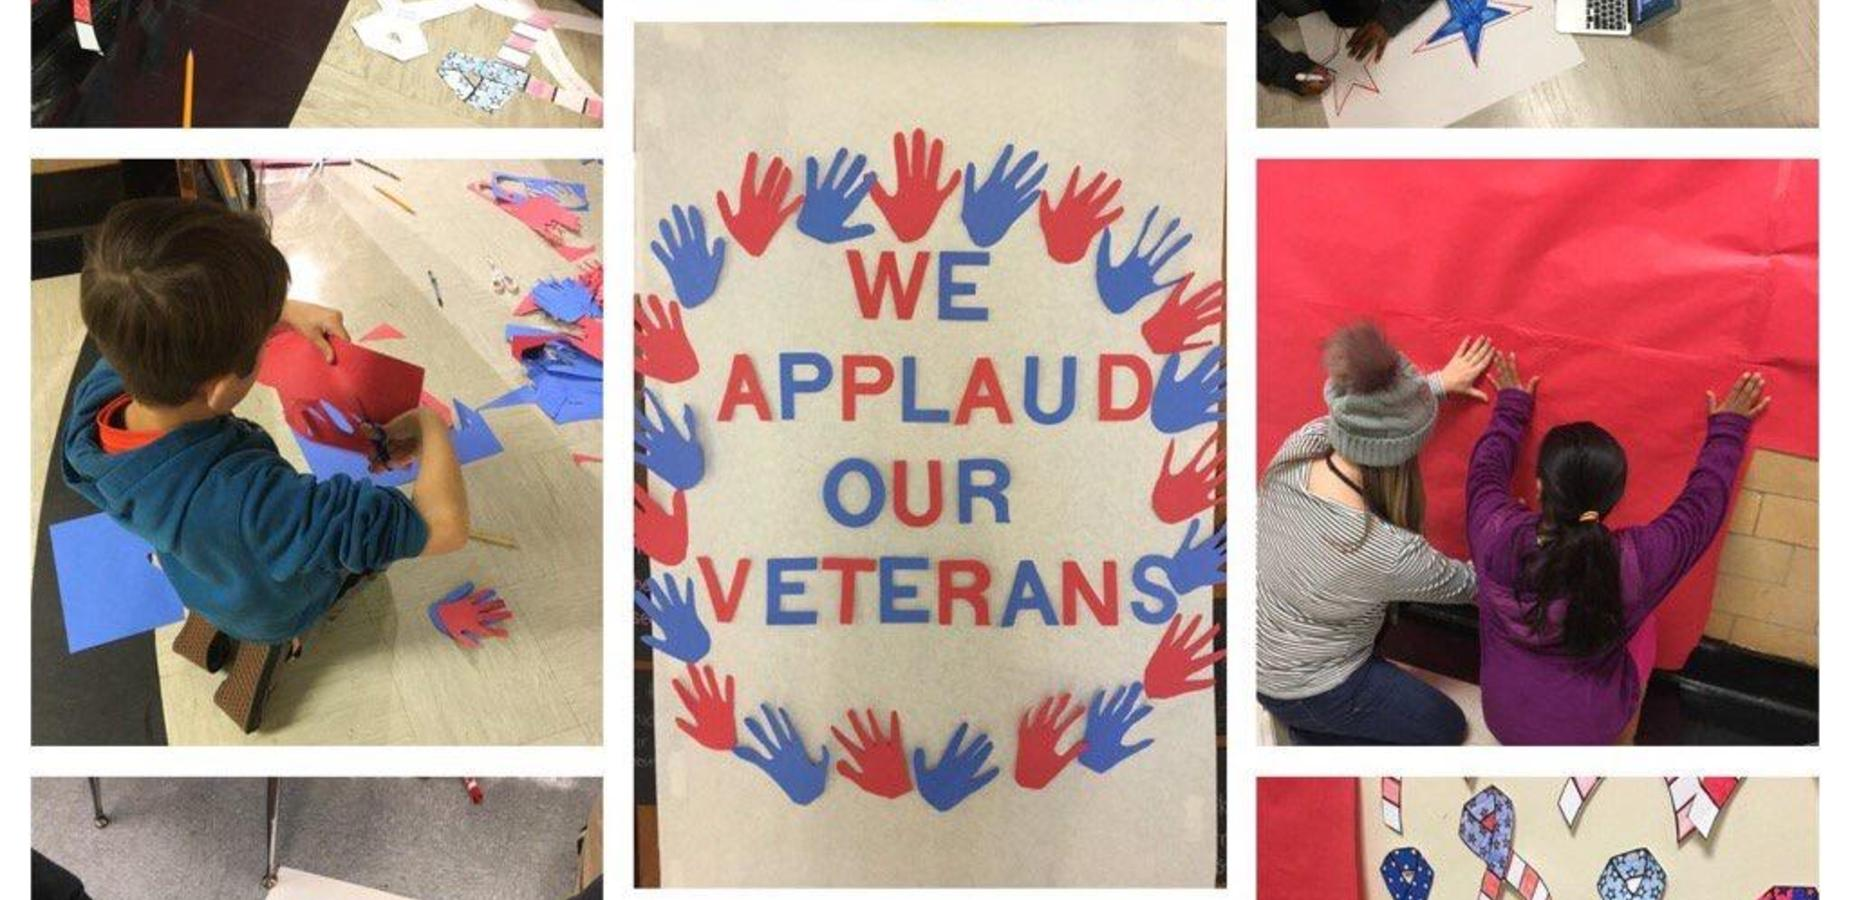 Applaud our Veterans